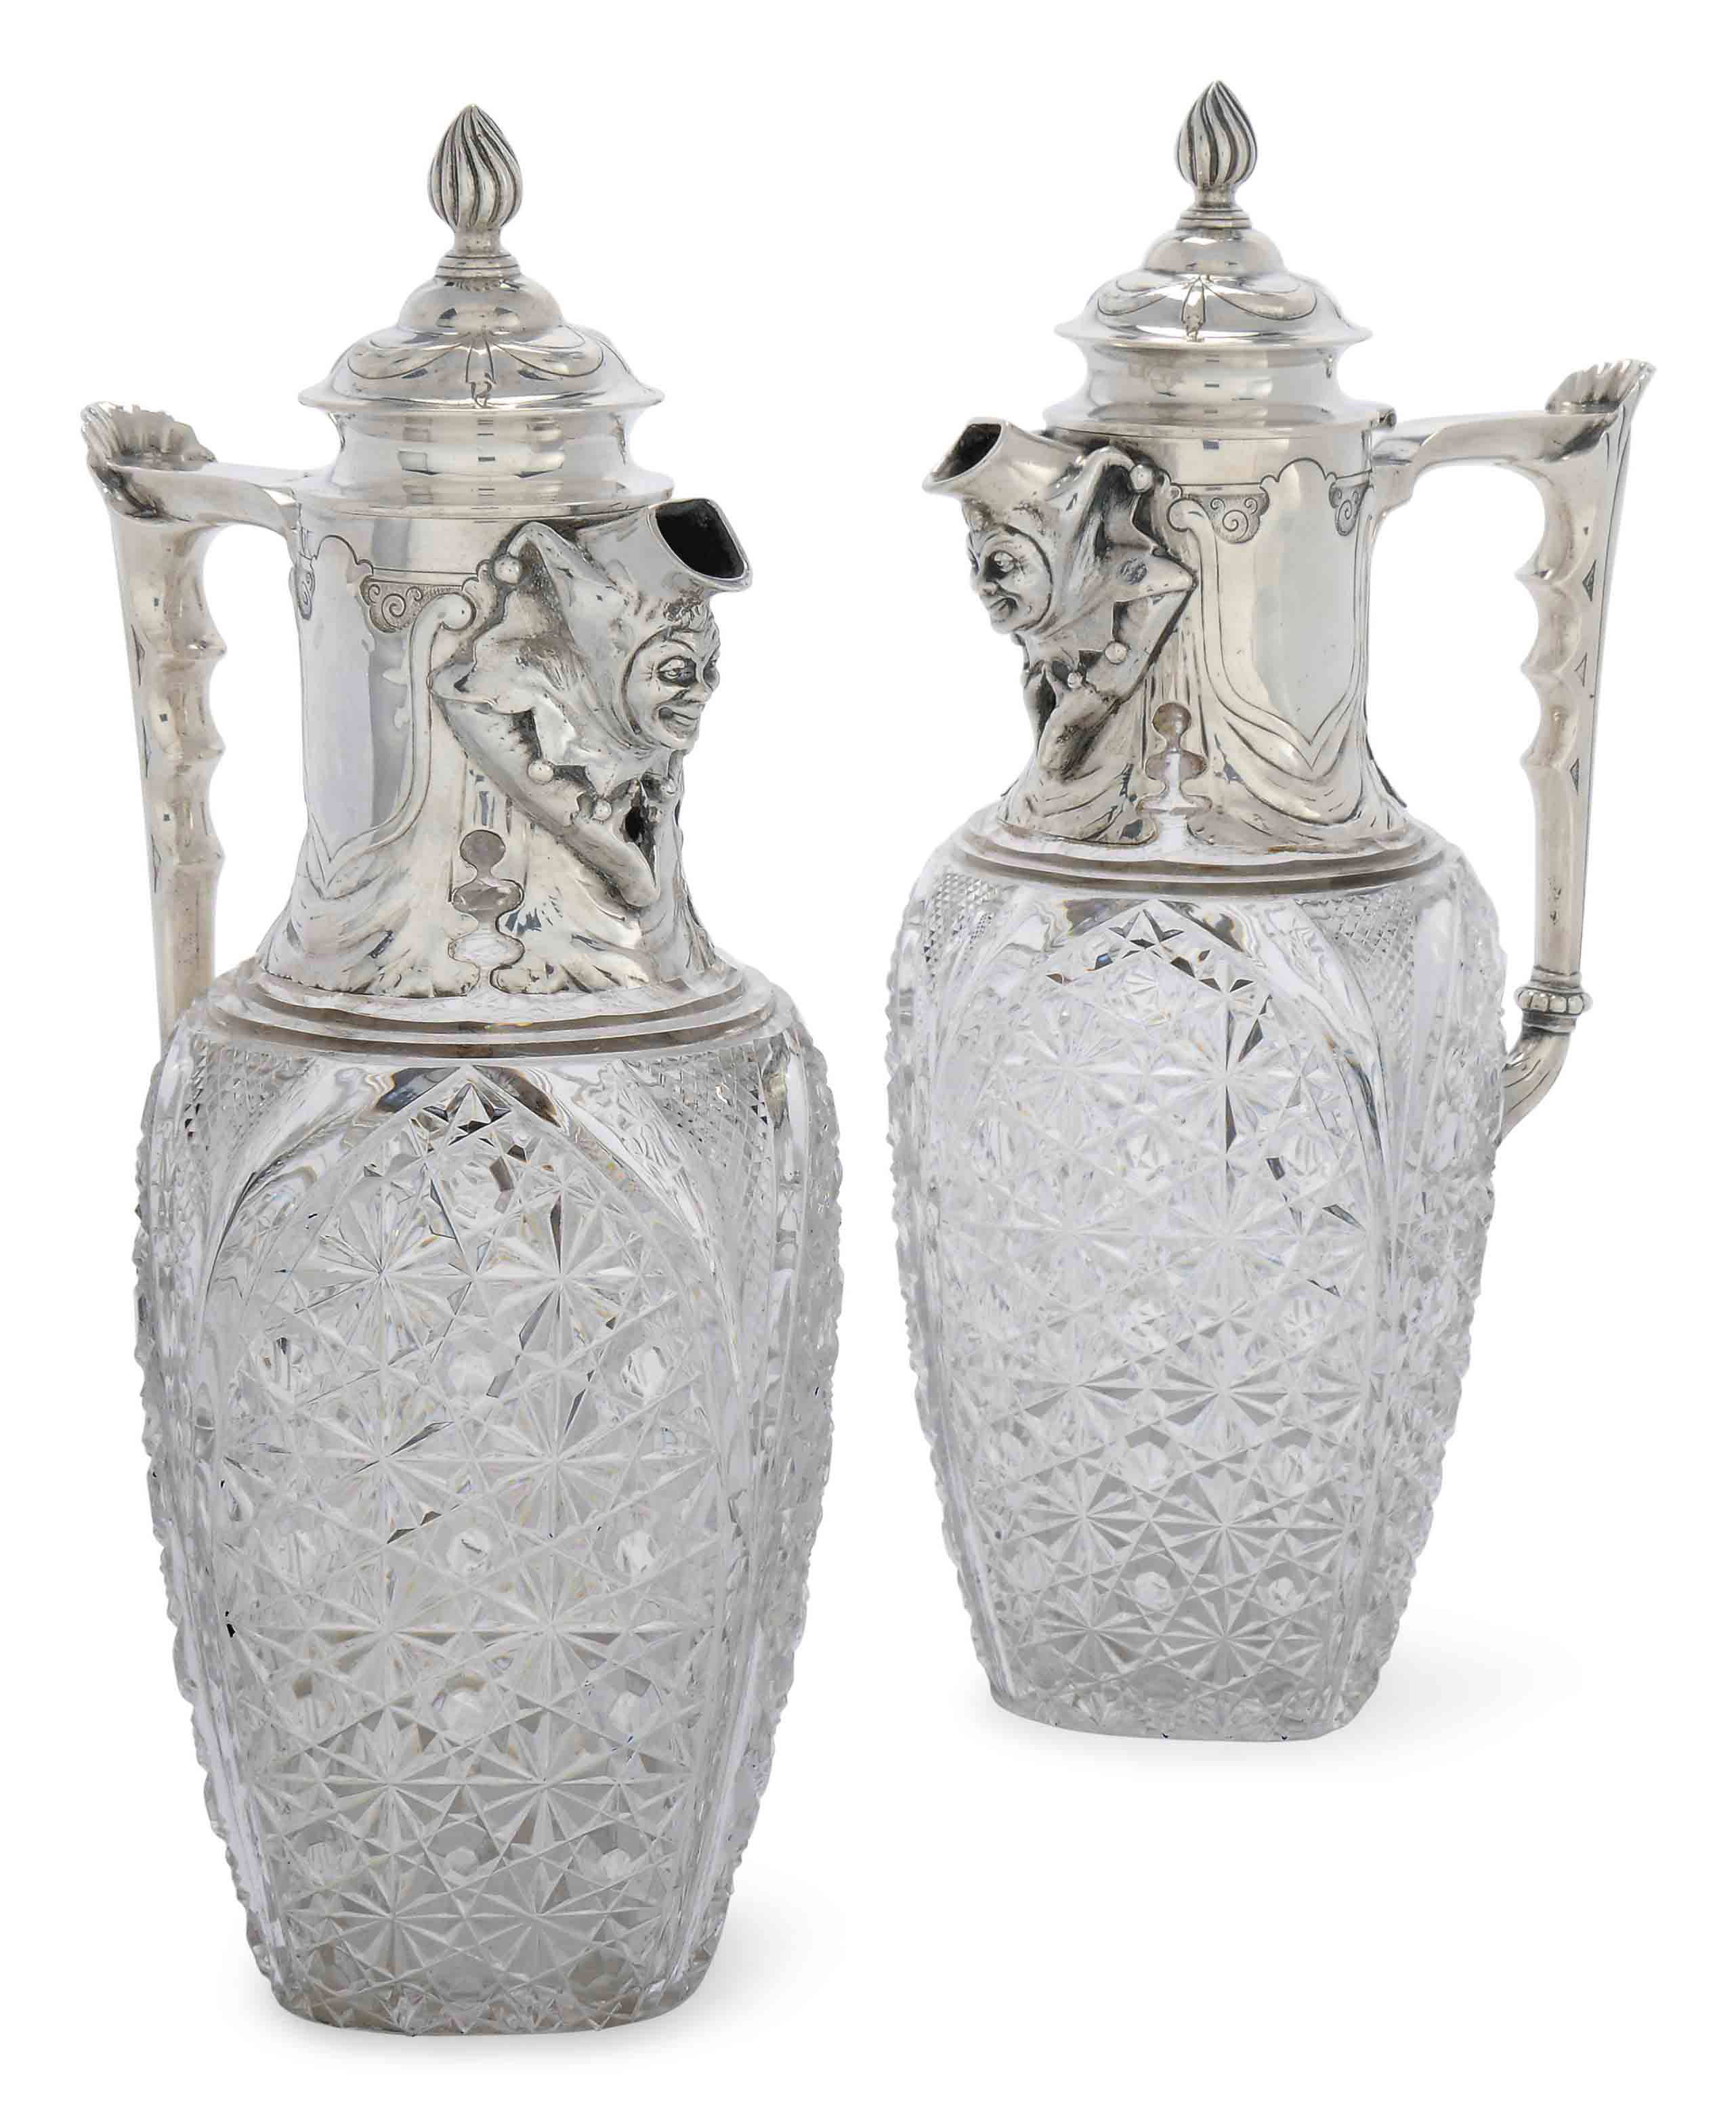 A PAIR OF LATE VICTORIAN SILVER-MOUNTED CUT-GLASS CLARET JUGS